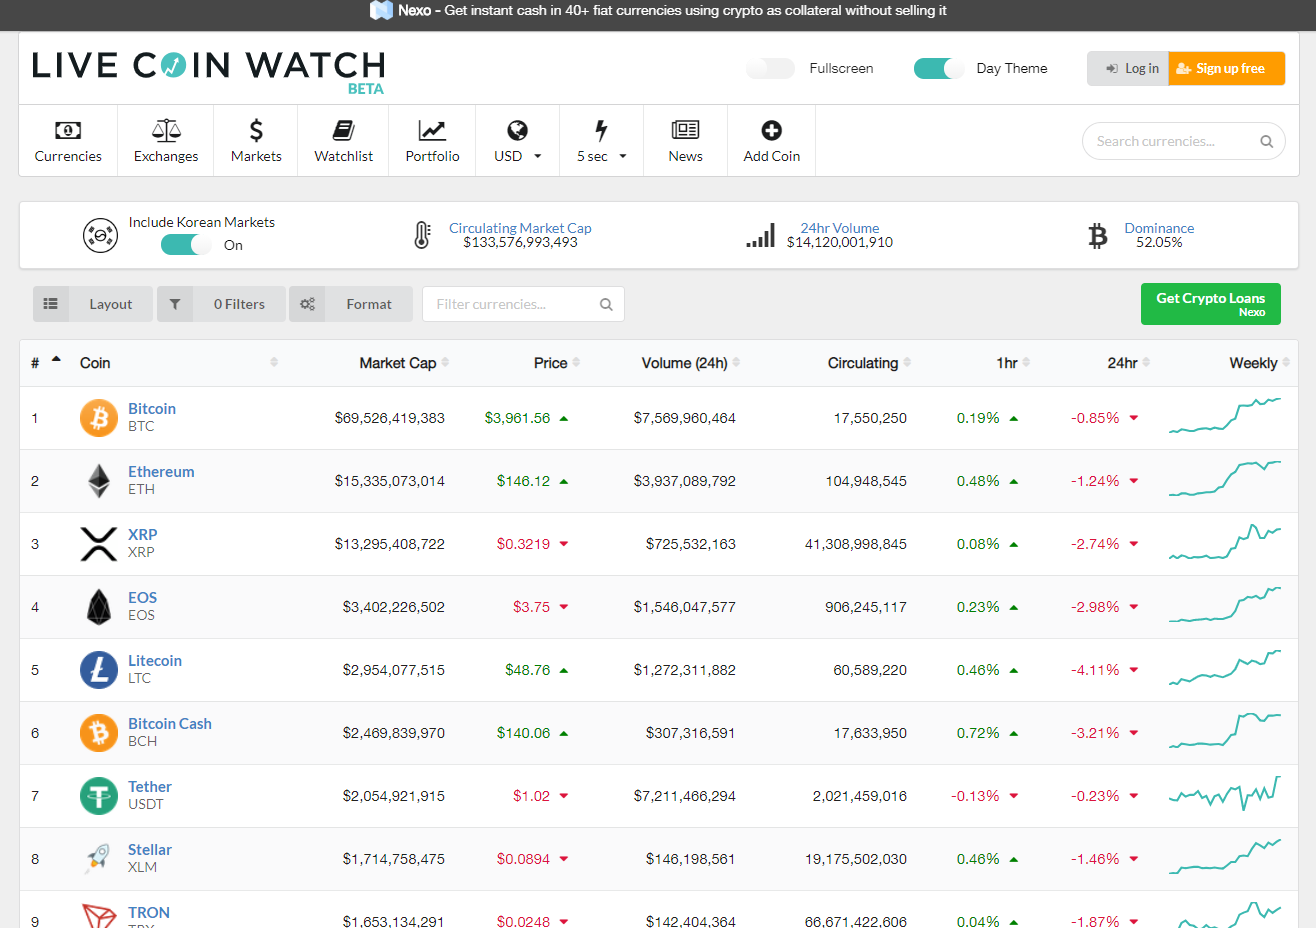 LiveCoinWatch